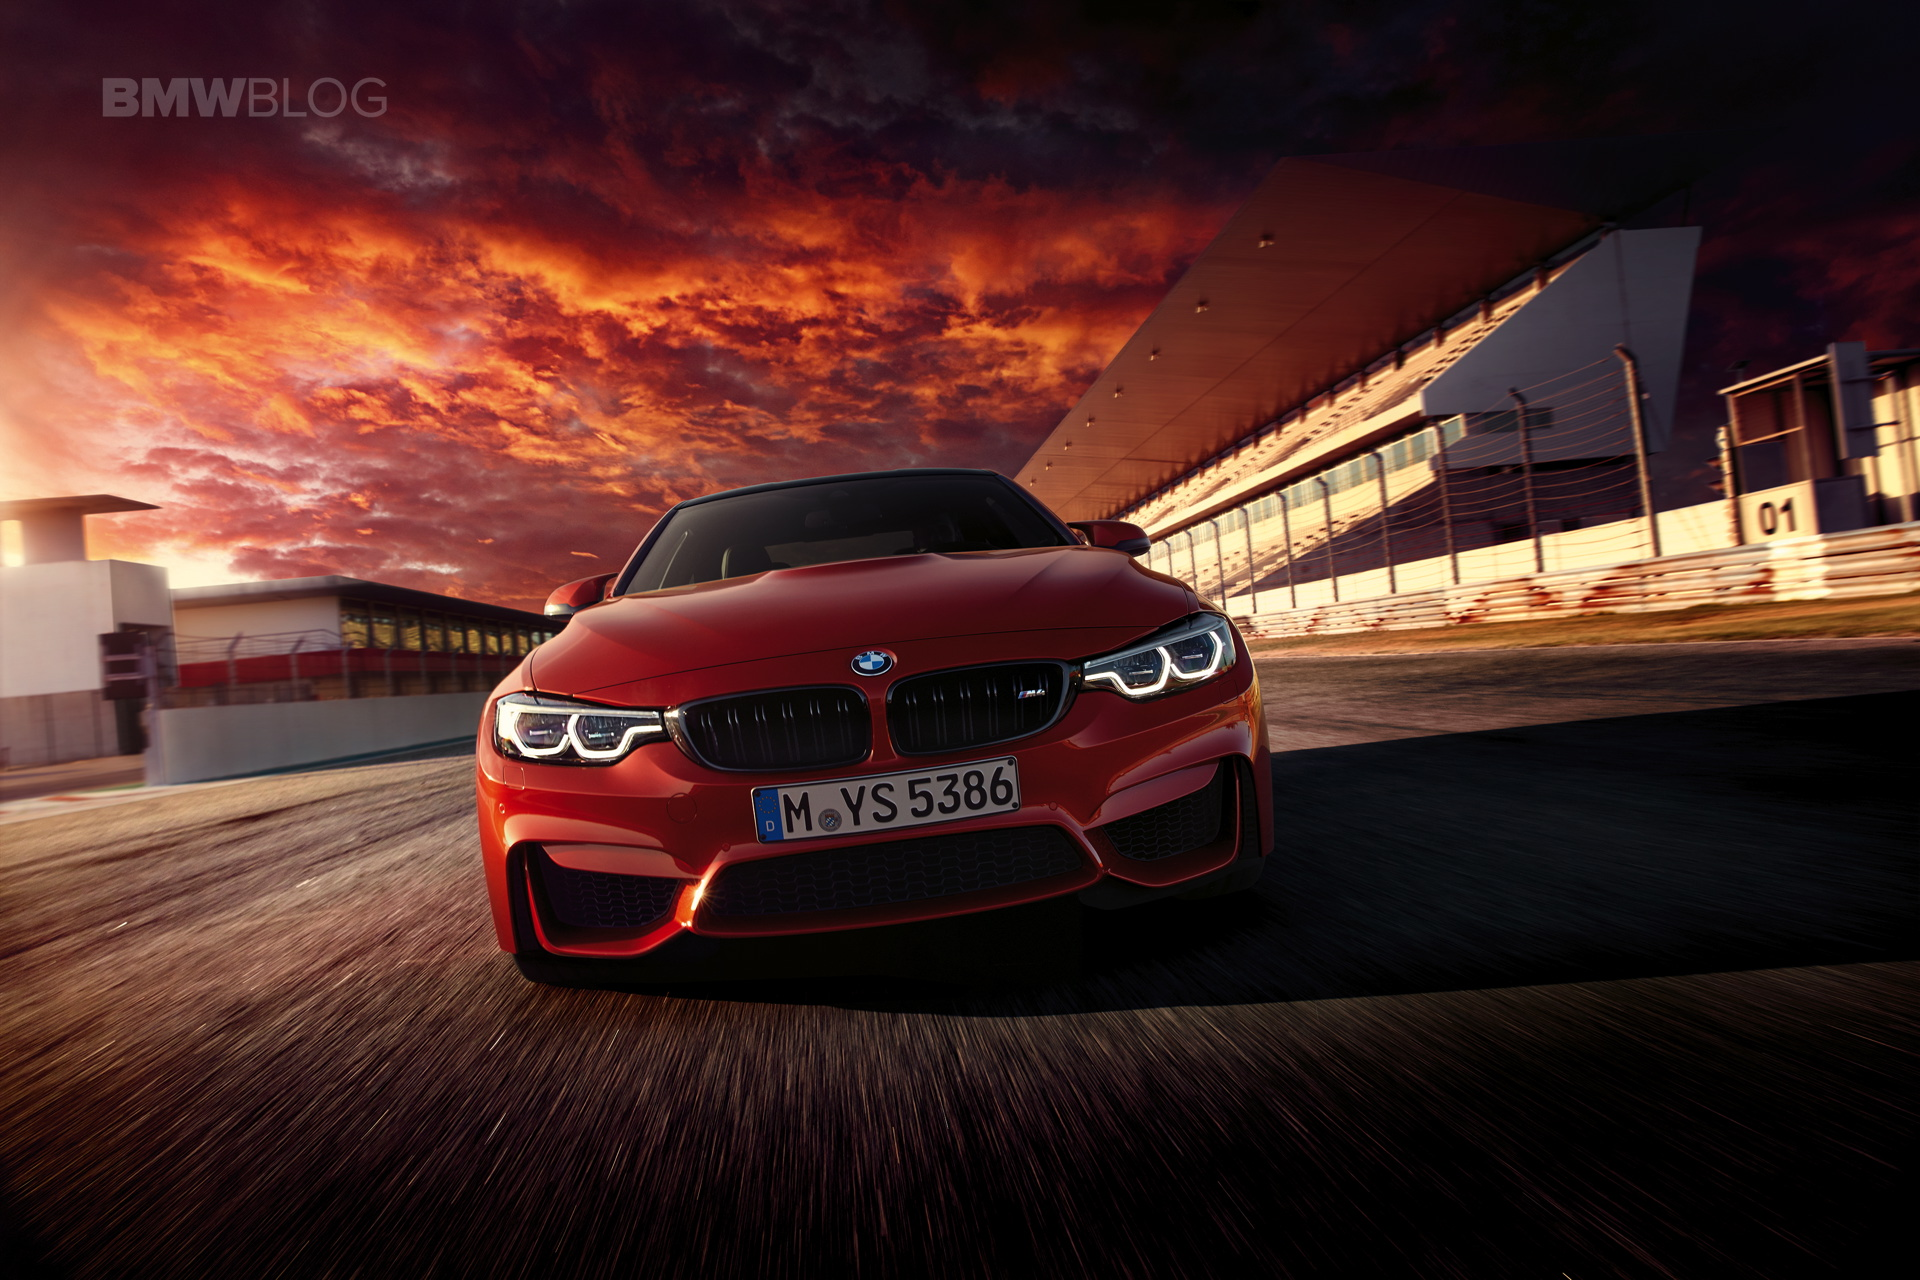 In Action: The new 2017 BMW M4 Coupe, BMW M4 Convertible and BMW M3 Sedan